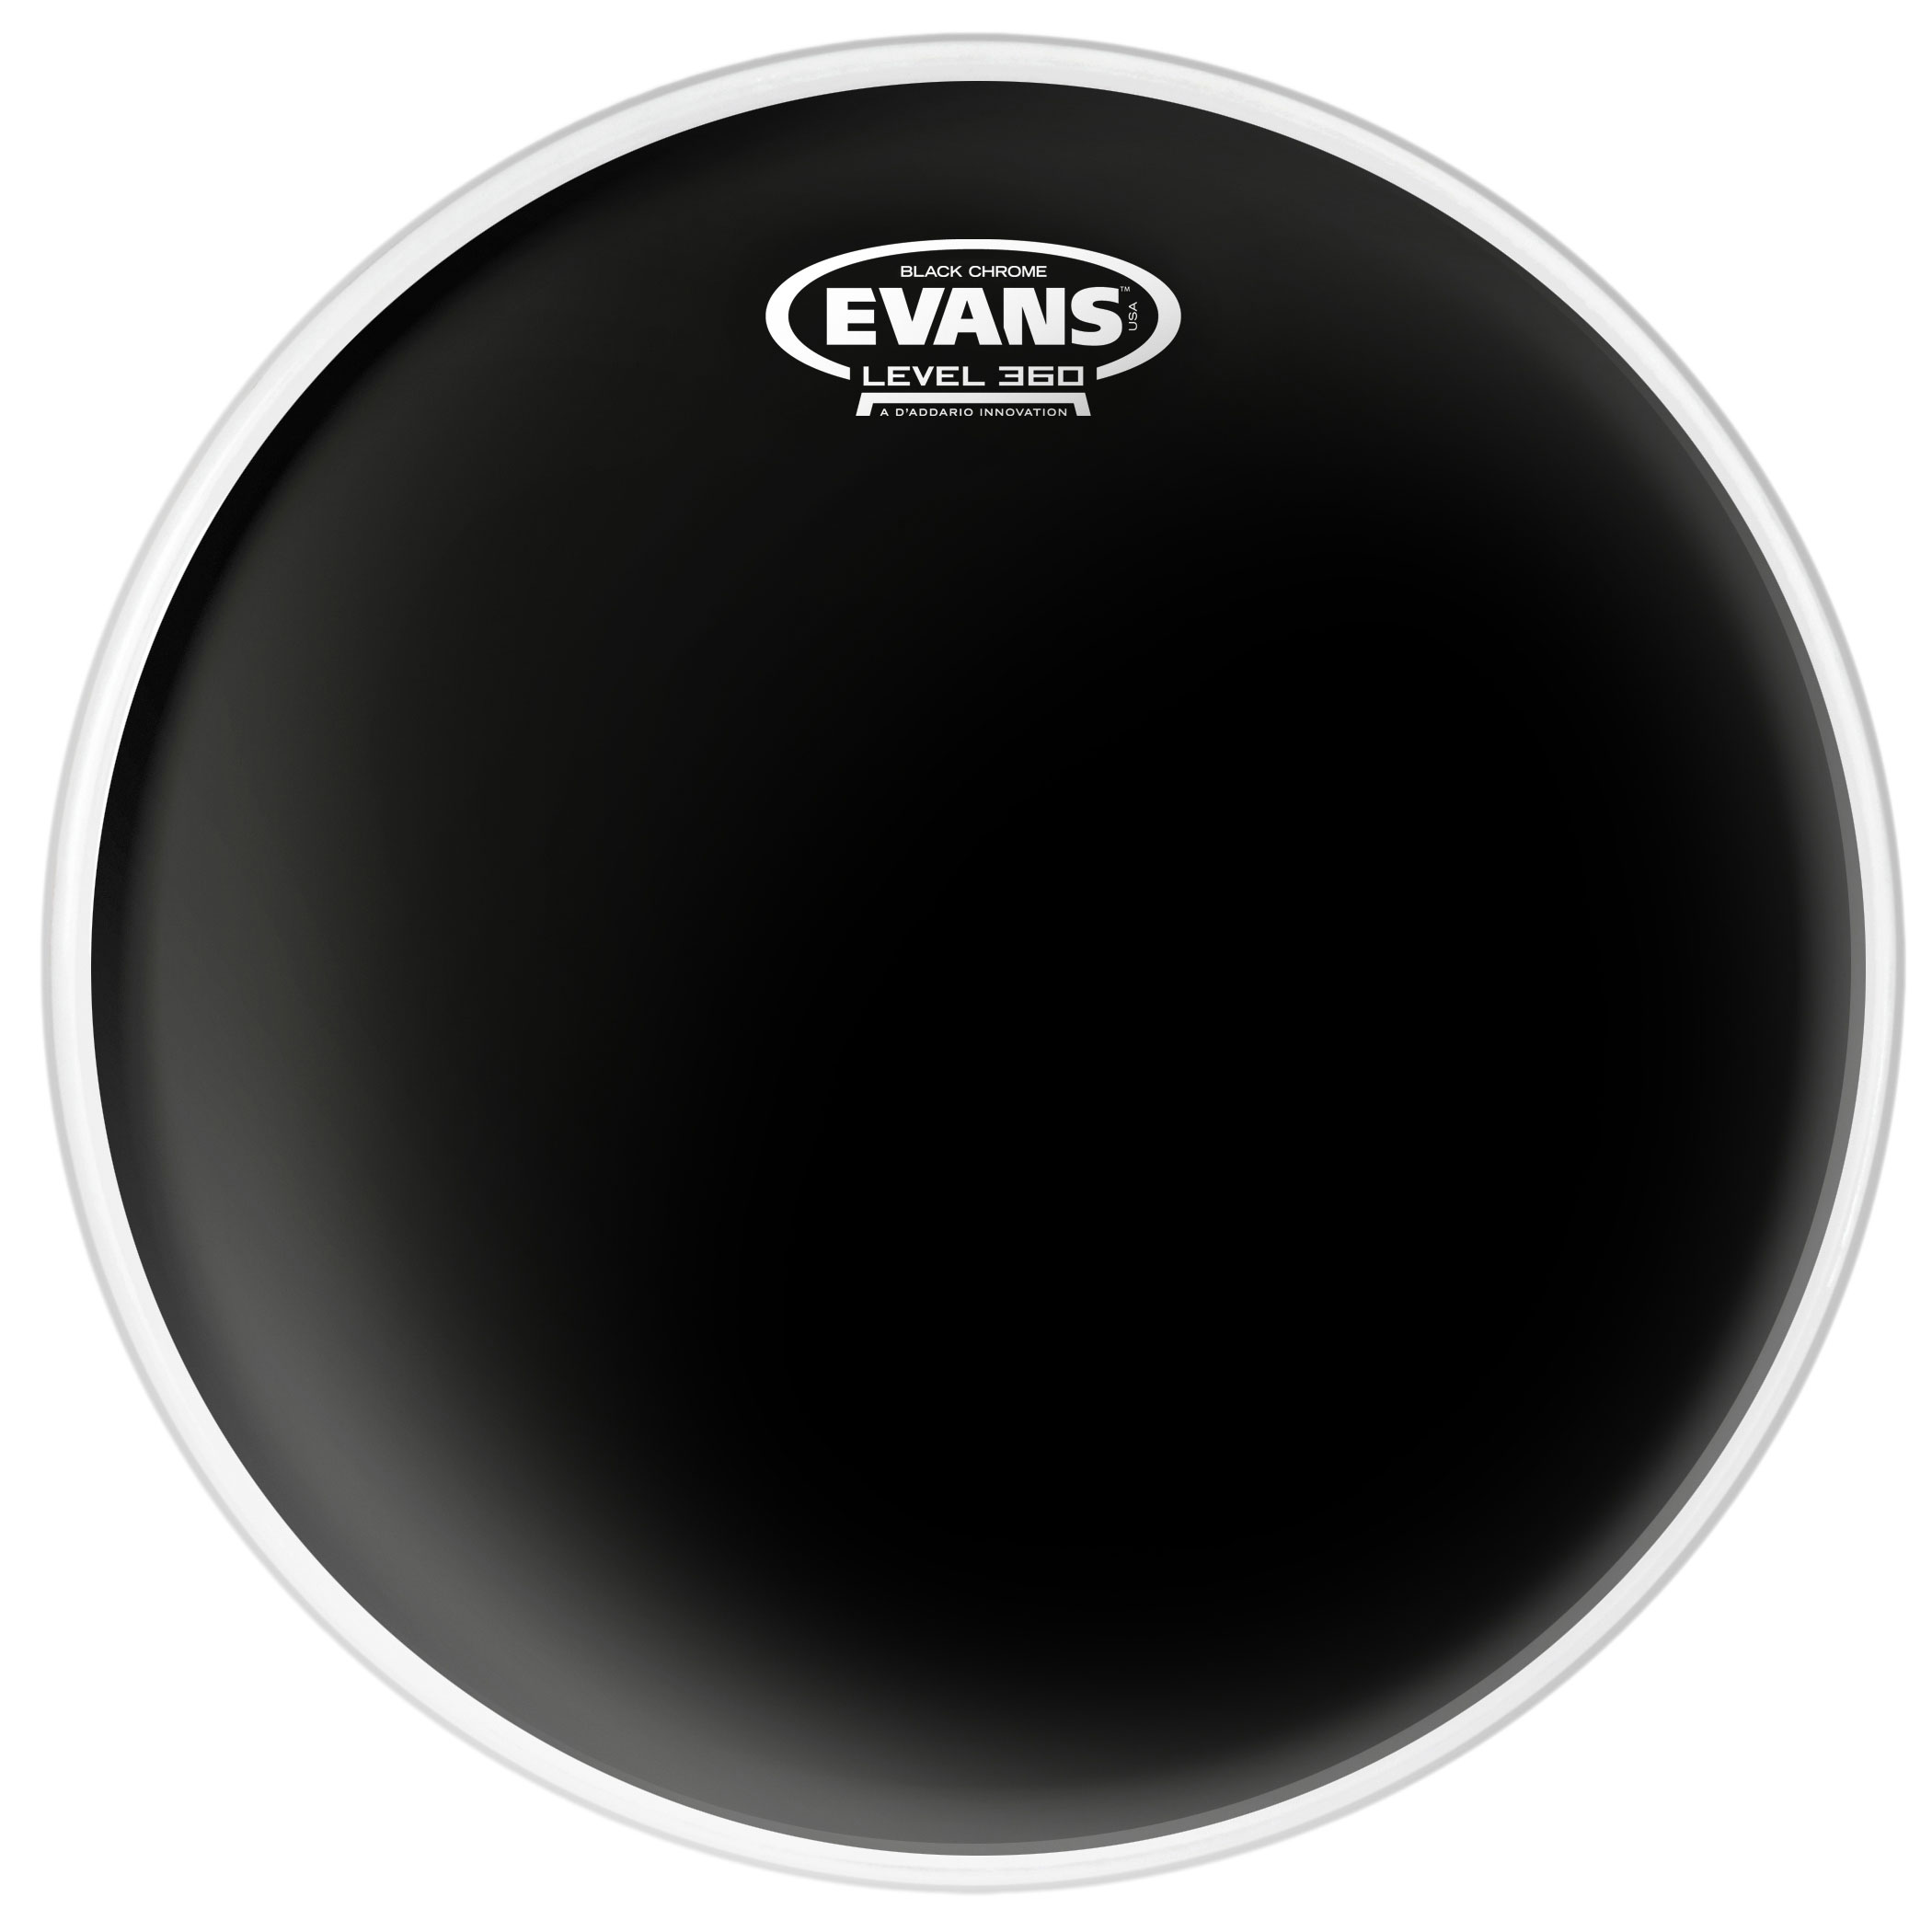 "Evans 12"" Black Chrome Head"